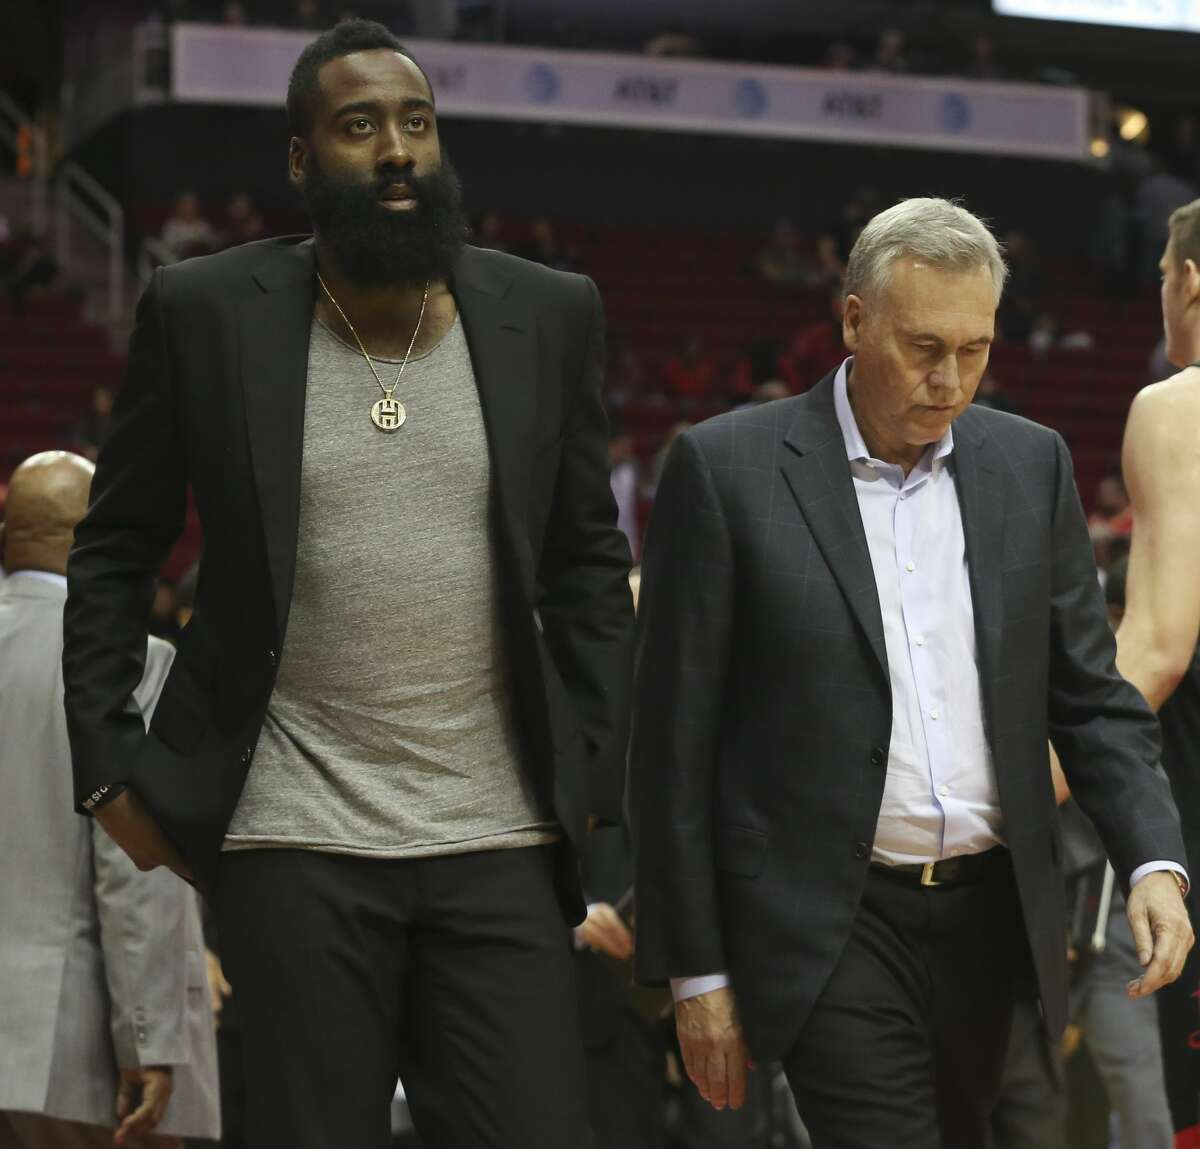 Houston Rockets guard James Harden and Houston Rockets Head Coach Mike D'Antoni leaving the court after losing the NBA game against the LA Clippers at Toyota Center on Friday, Oct. 26, 2018, in Houston. The Houston Rockets lost to the LA Clippers 133-113.